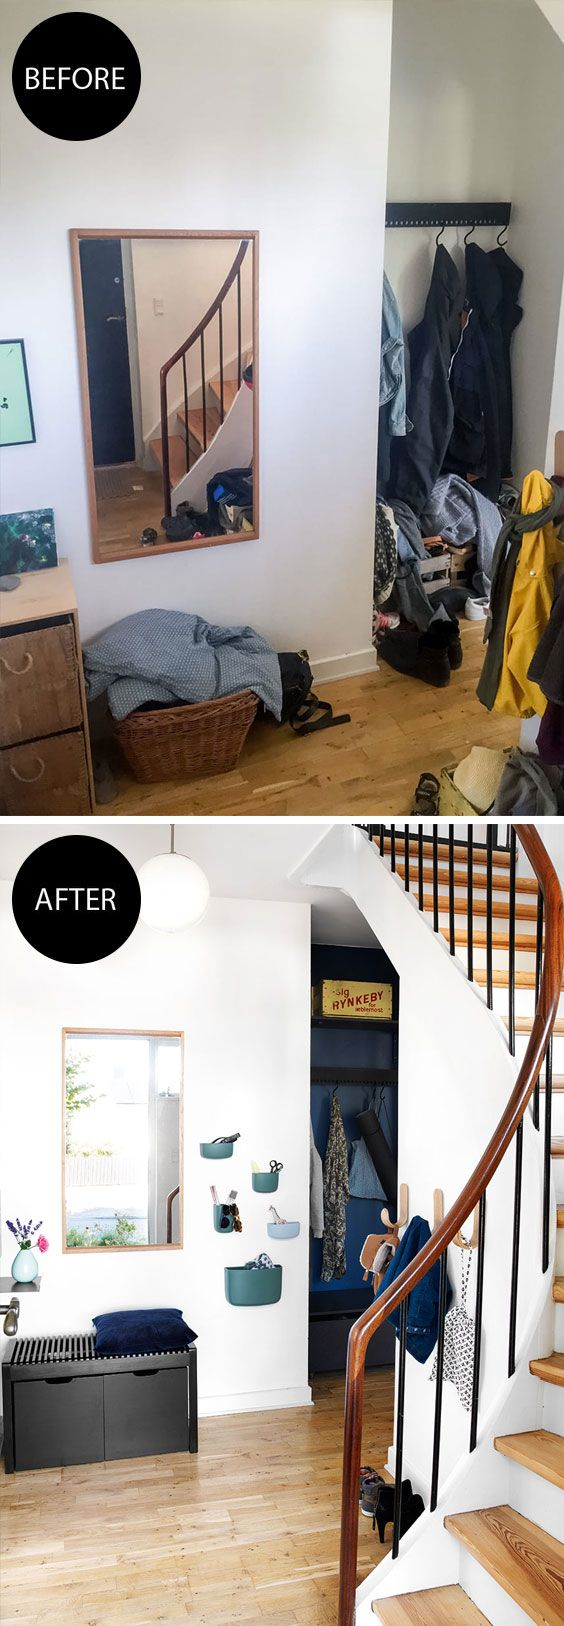 Entryway makeover - from messy to smart storage and modern look.